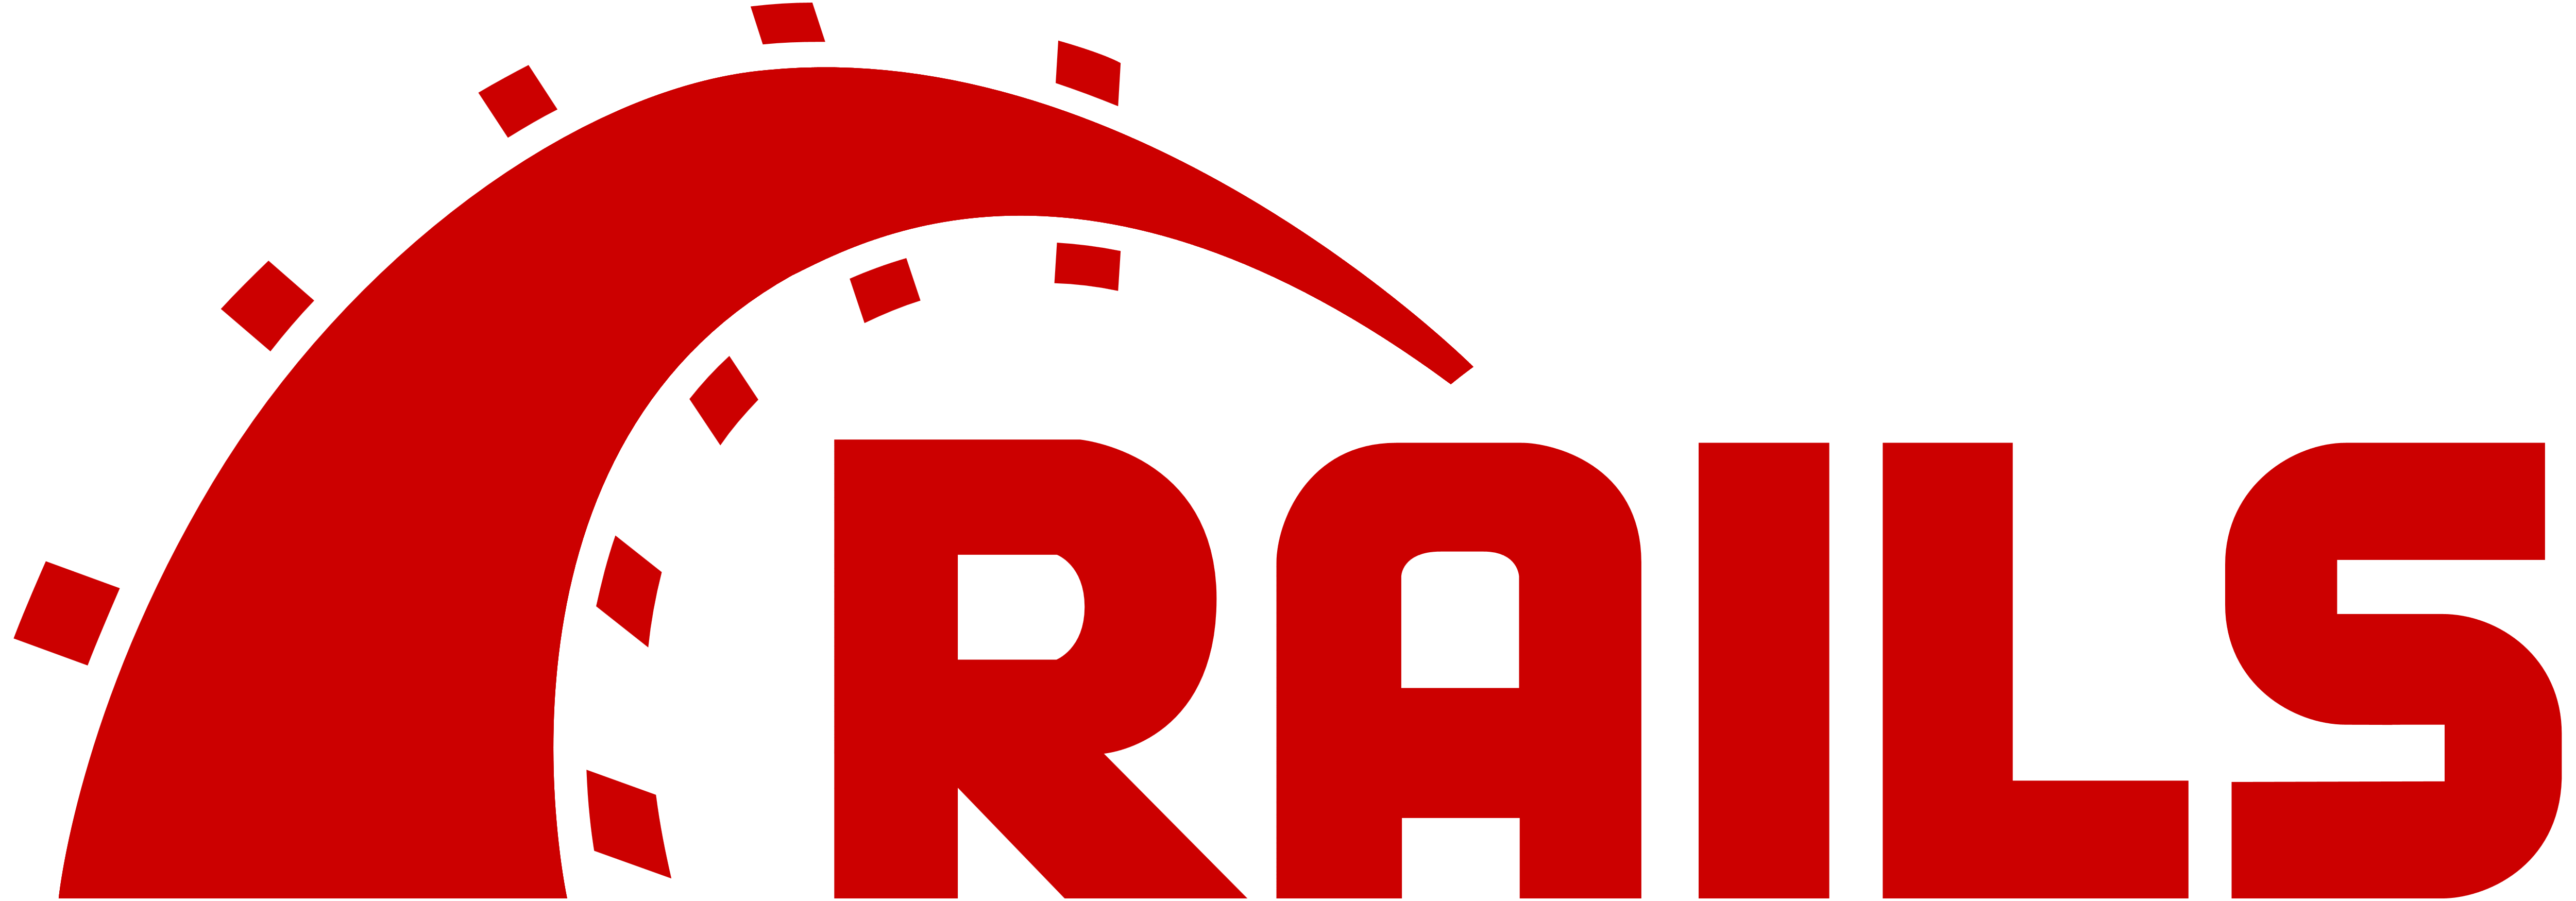 Ruby On Rails Logos Download